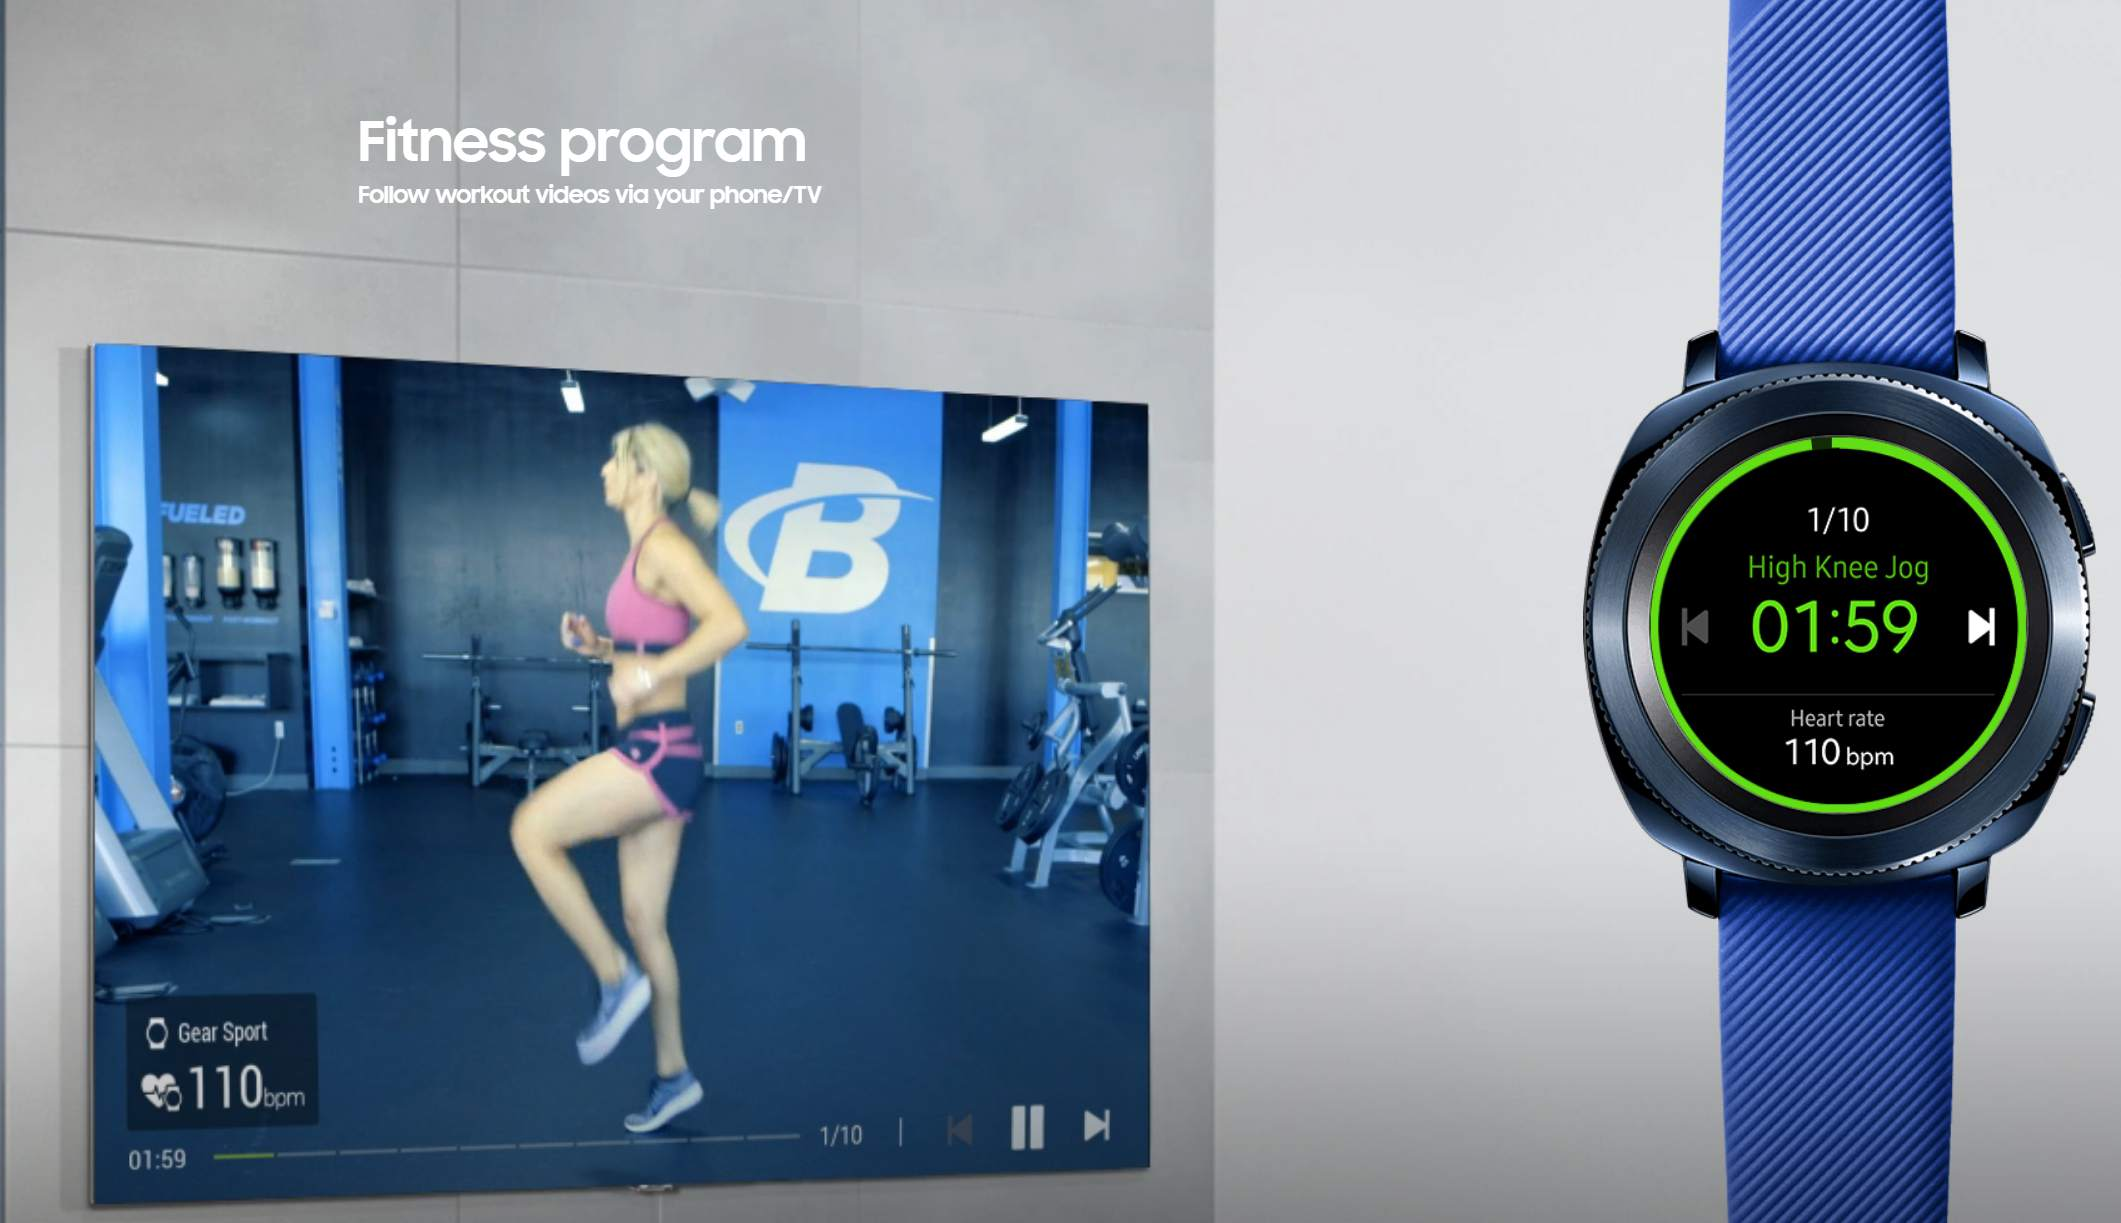 TV video showing a workout next to a Gear Sport watch tracking the workout.